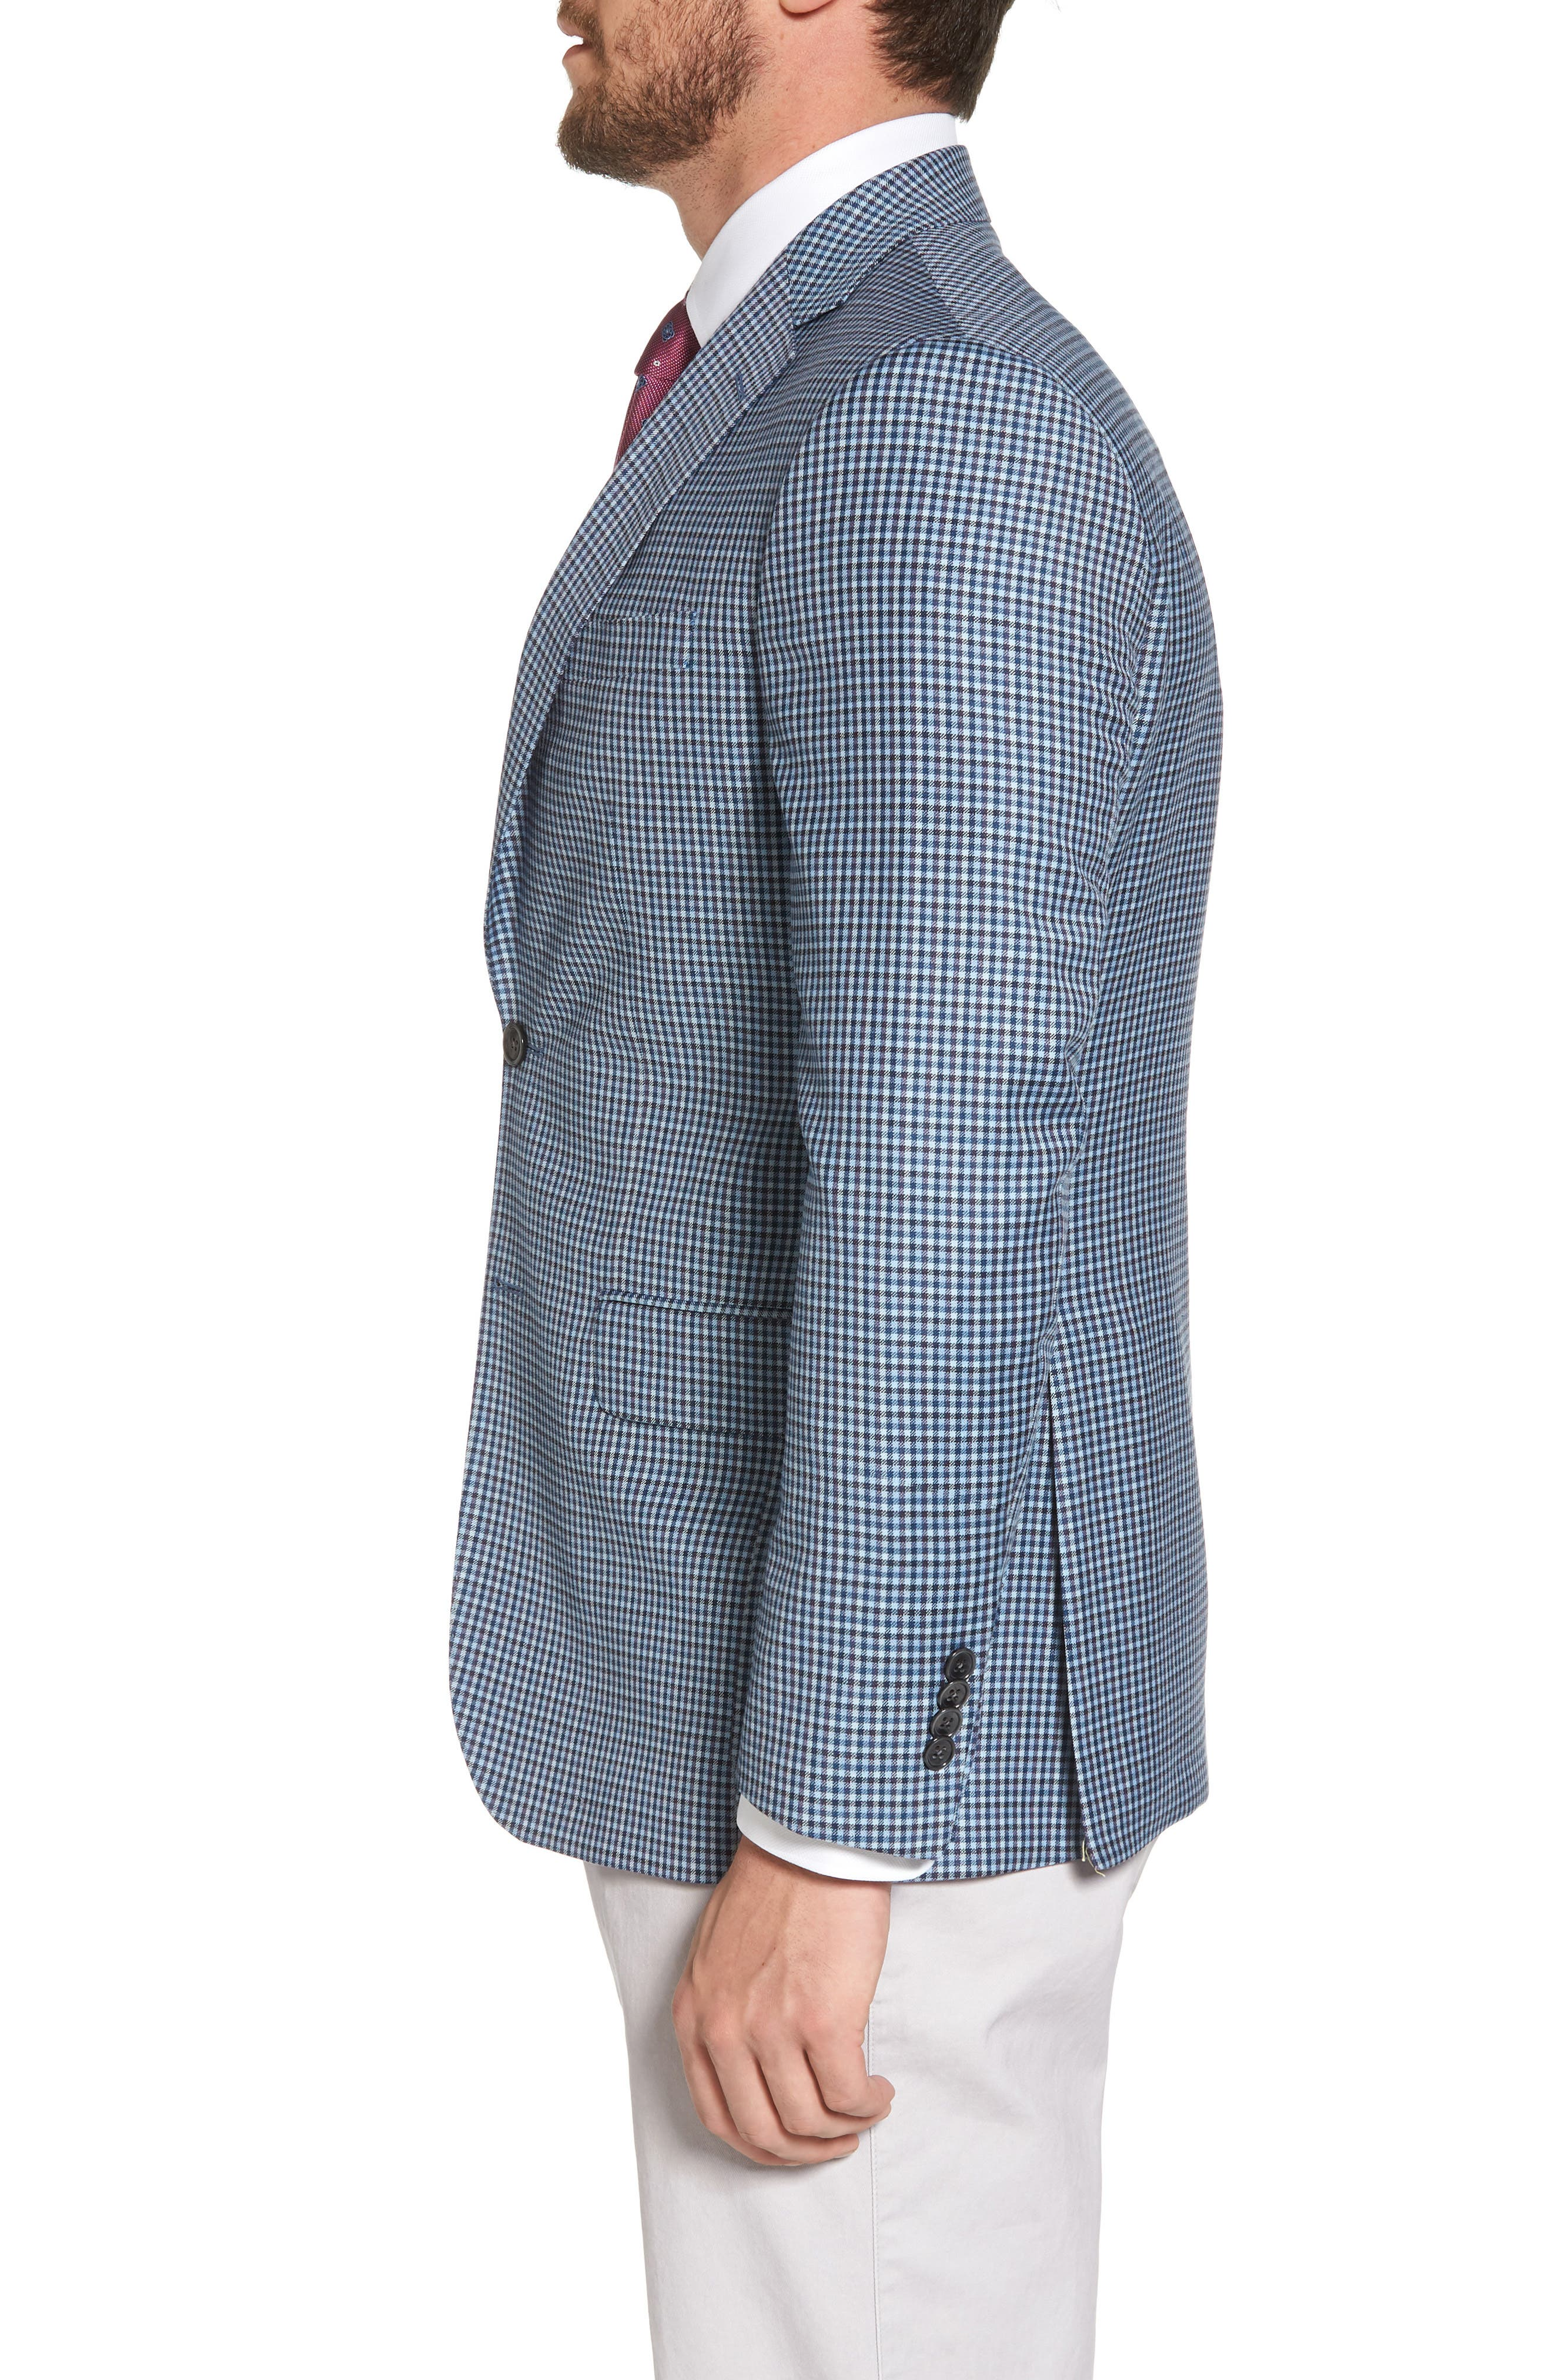 Arnold Classic Fit Check Wool Sport Coat,                             Alternate thumbnail 3, color,                             400